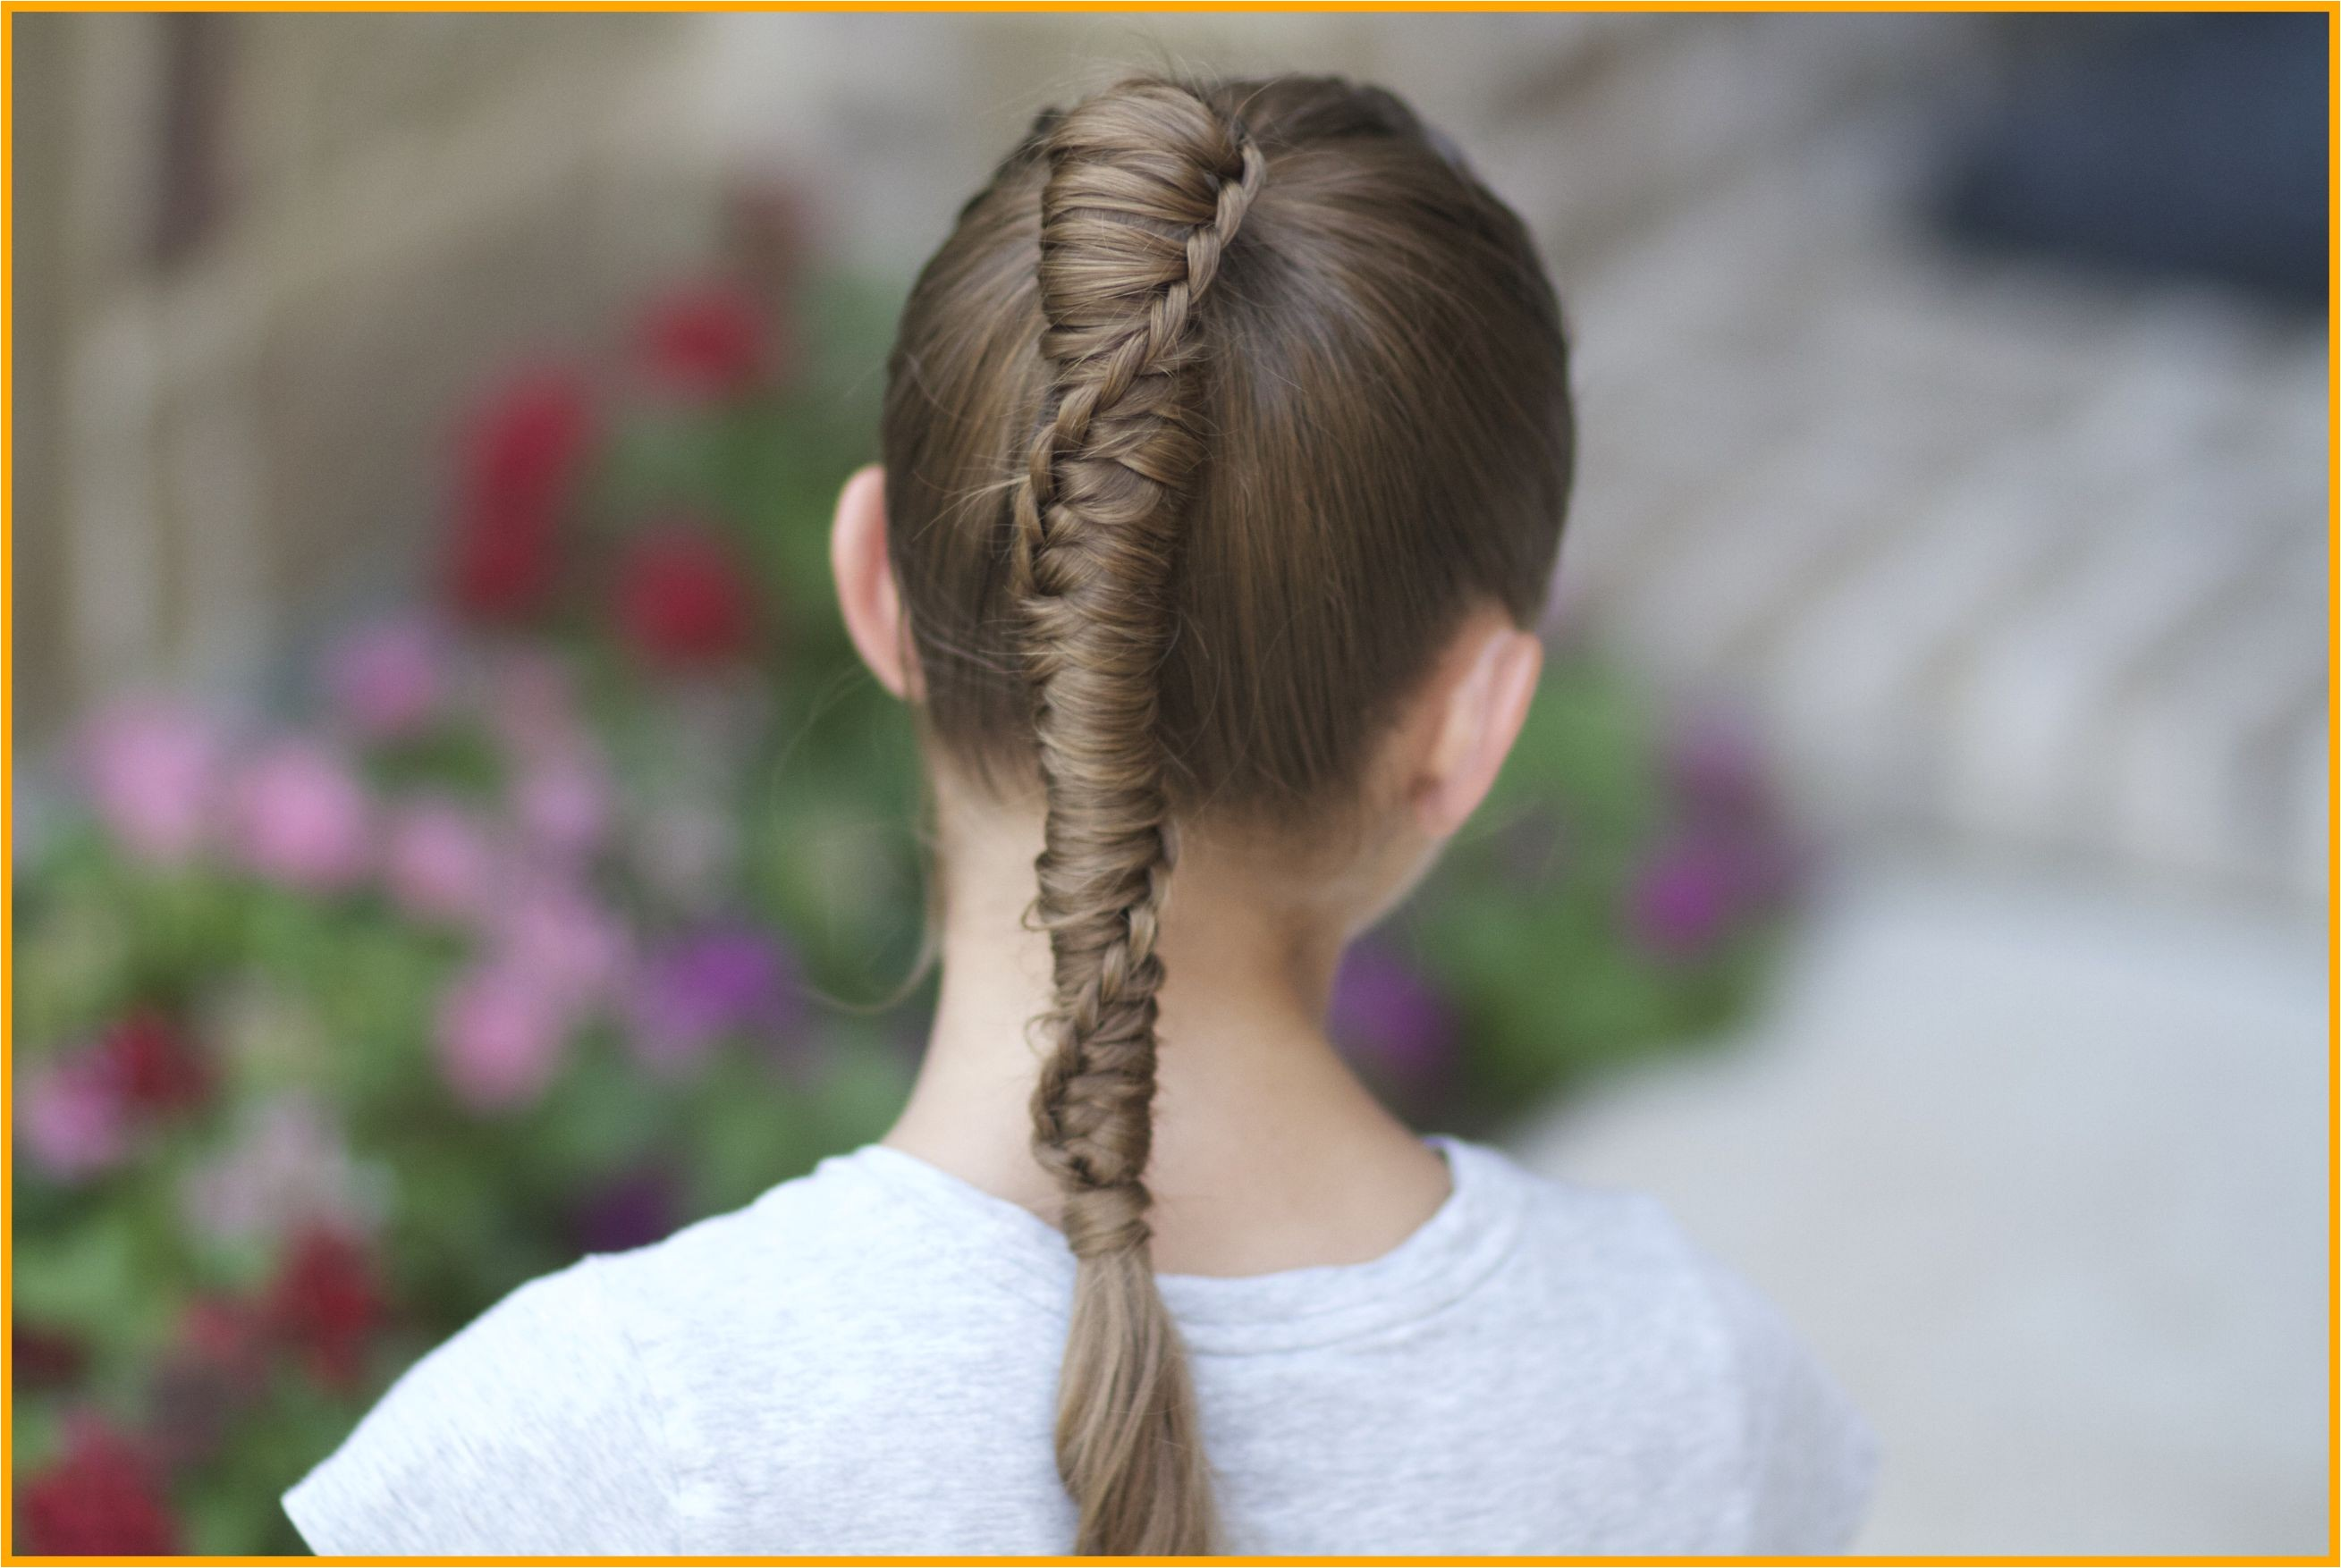 Inspiring Chinese Staircase Braid Cute Hairstyles Picture For Girl French Style And Inspiration Cute Girl Hairstyles